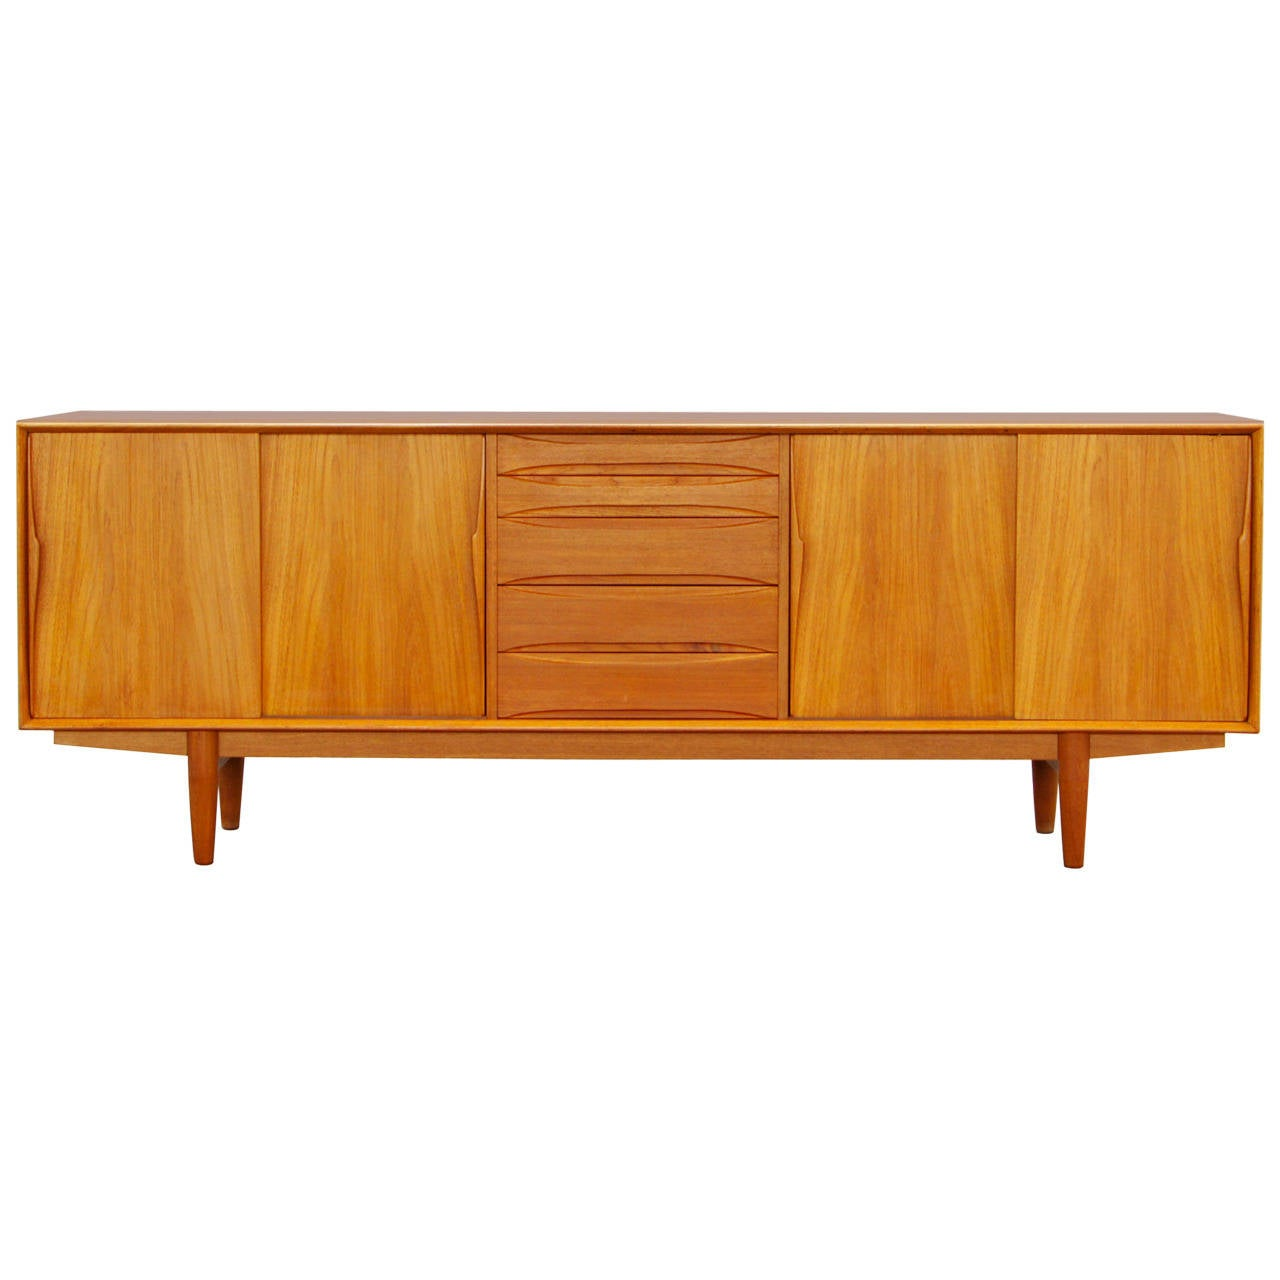 arne vodder teak sideboard danish mid century modern design 1960s at 1stdibs. Black Bedroom Furniture Sets. Home Design Ideas